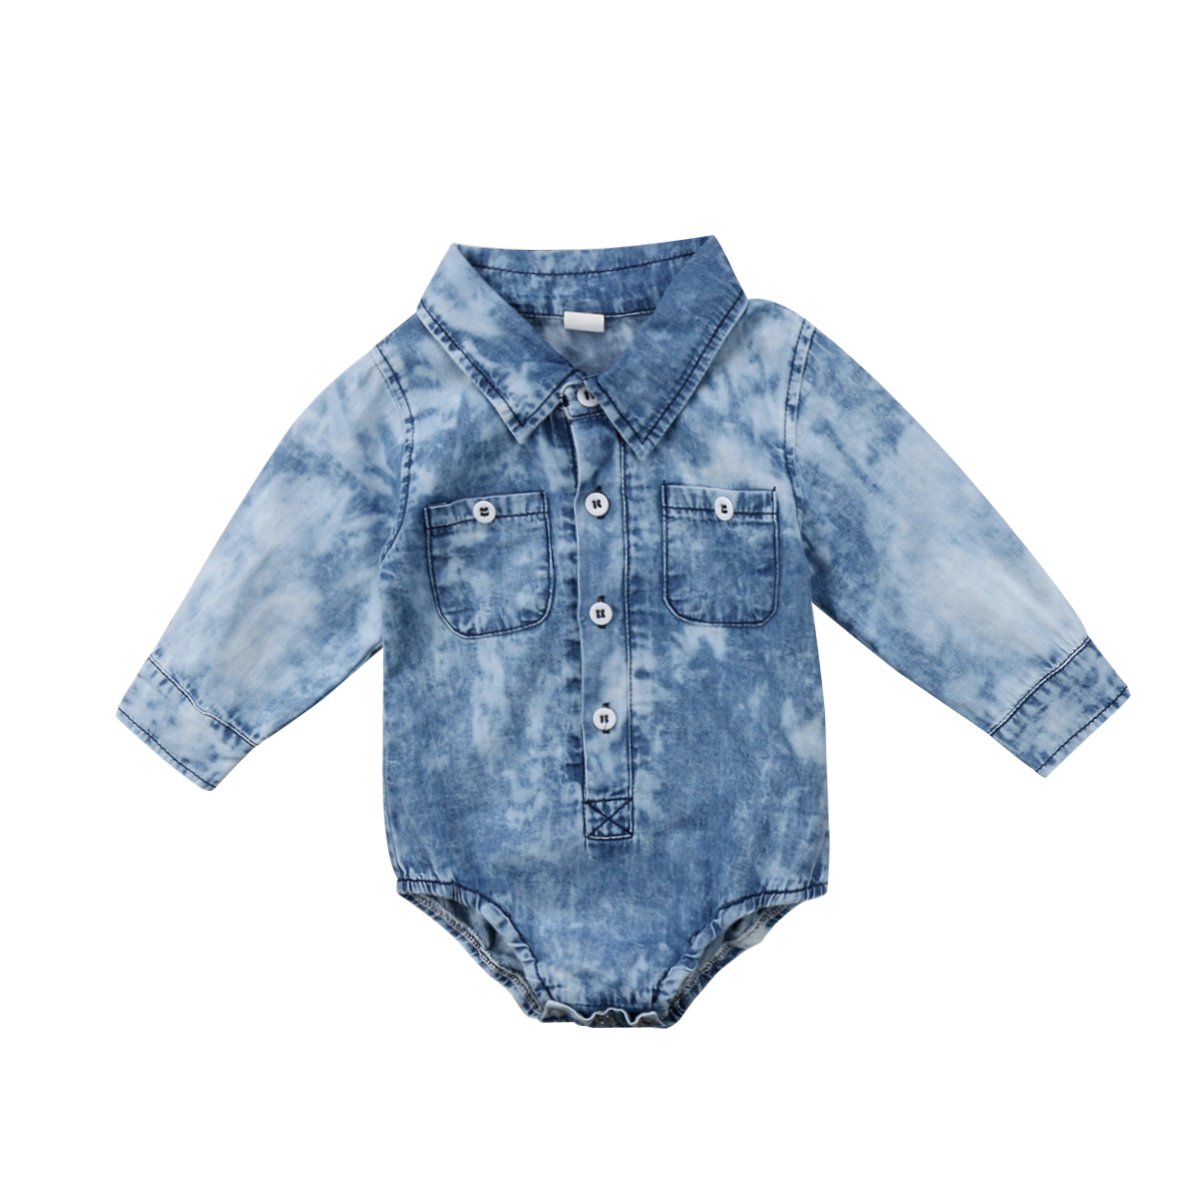 Newborn Infant Kids Baby Boy Clothes Denim Tops Jumpsuit Bodysuit Long Sleeve Cute Clothing Baby Boys Outfit 0-24M